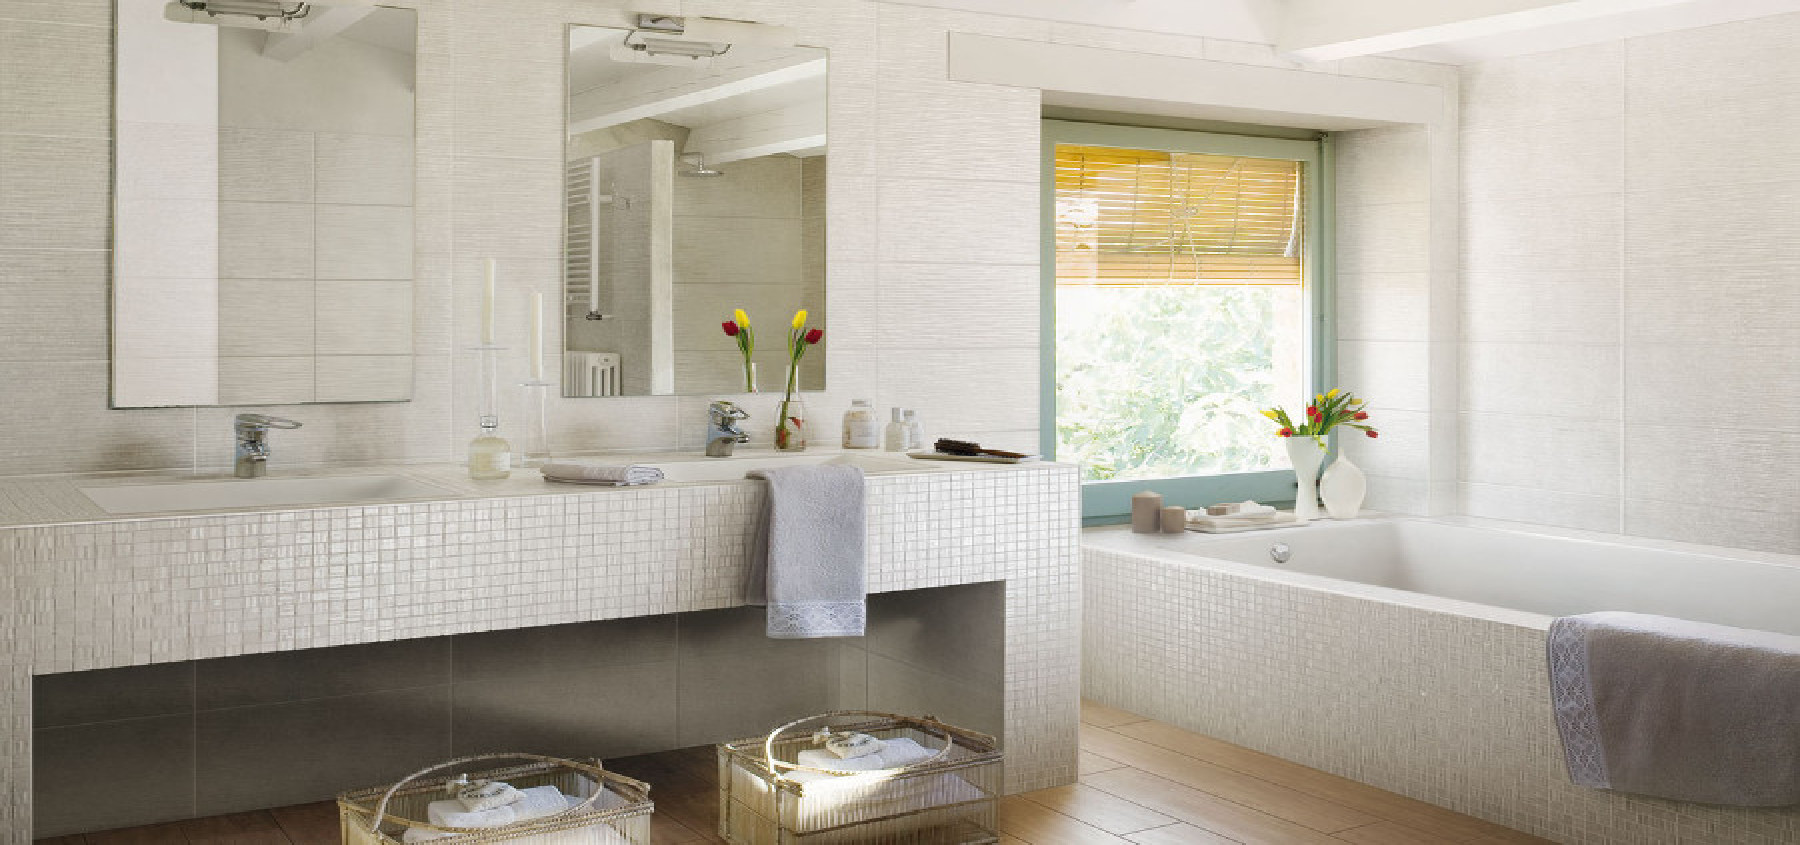 Ideas for floor and wall coverings in the bathroom | Floornature